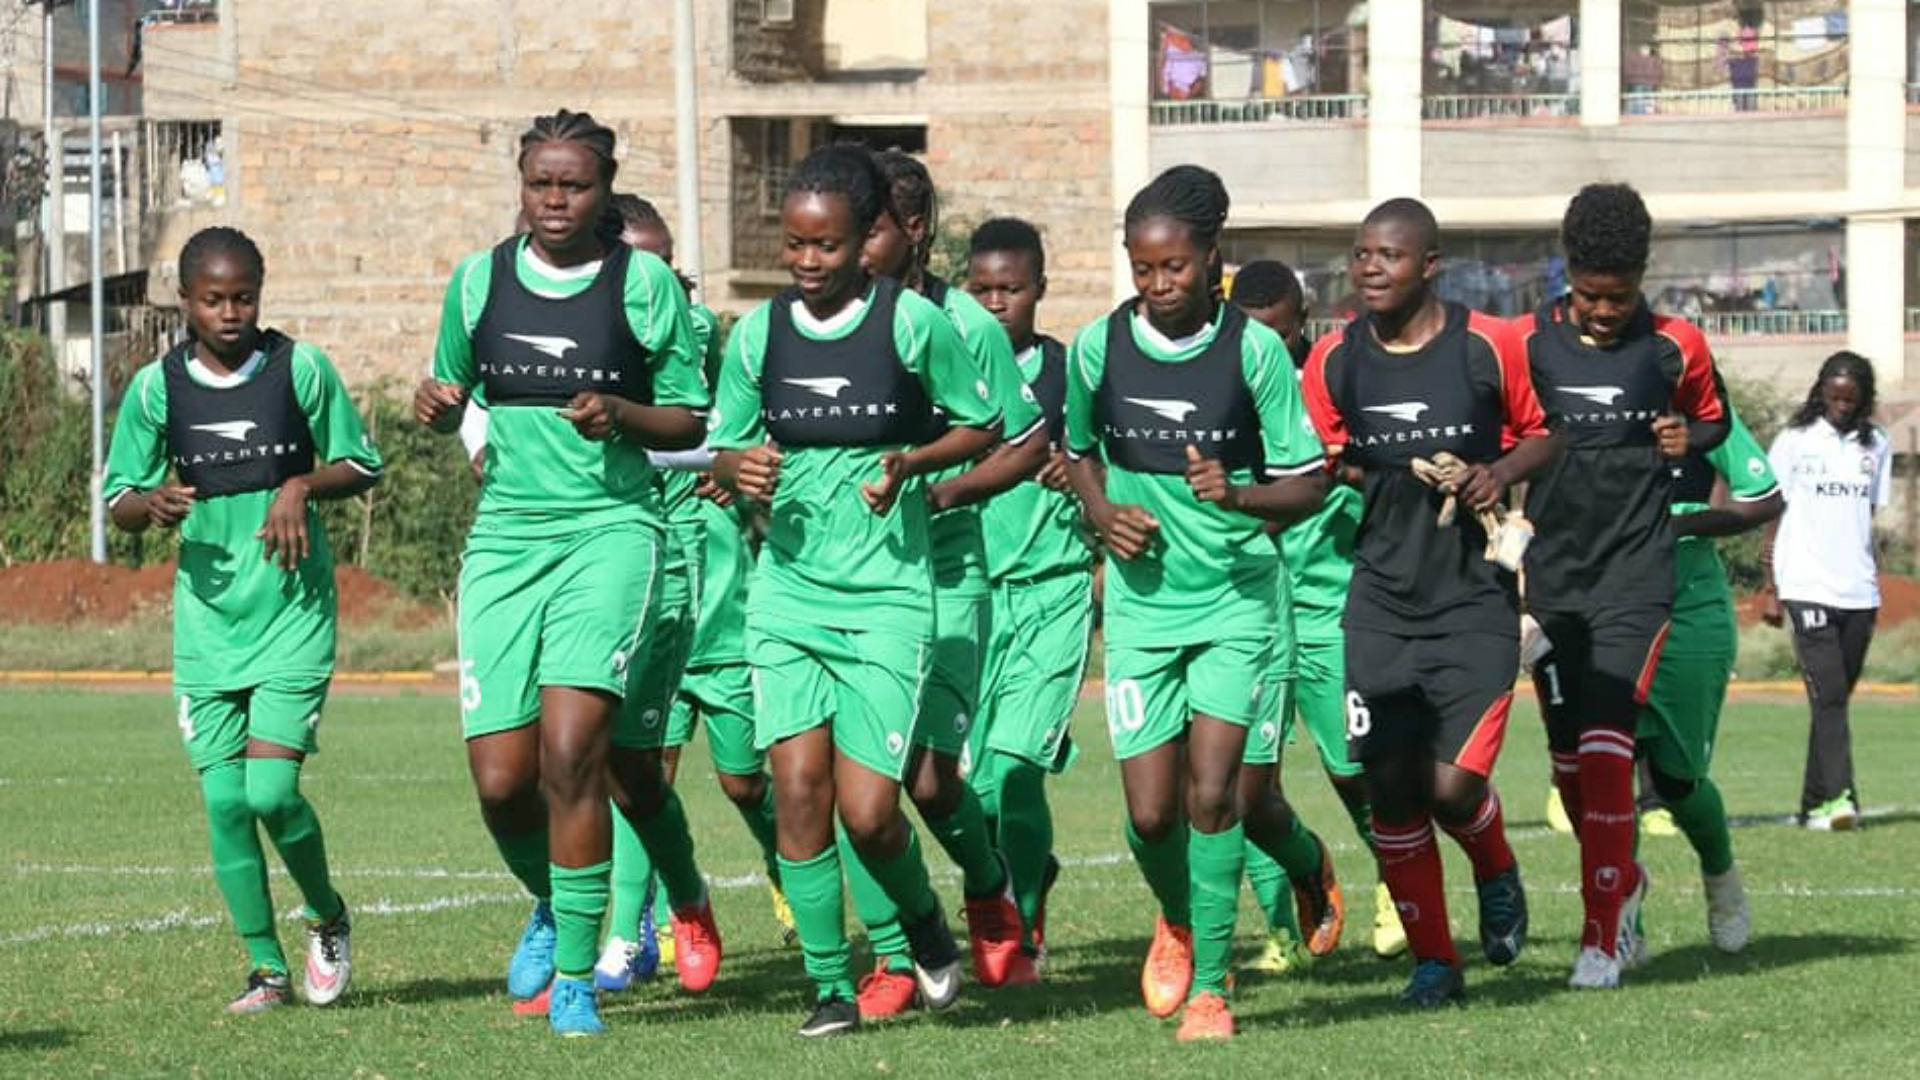 Olympic Qualifier: Harambee Starlets vs Black Queens match dates revealed